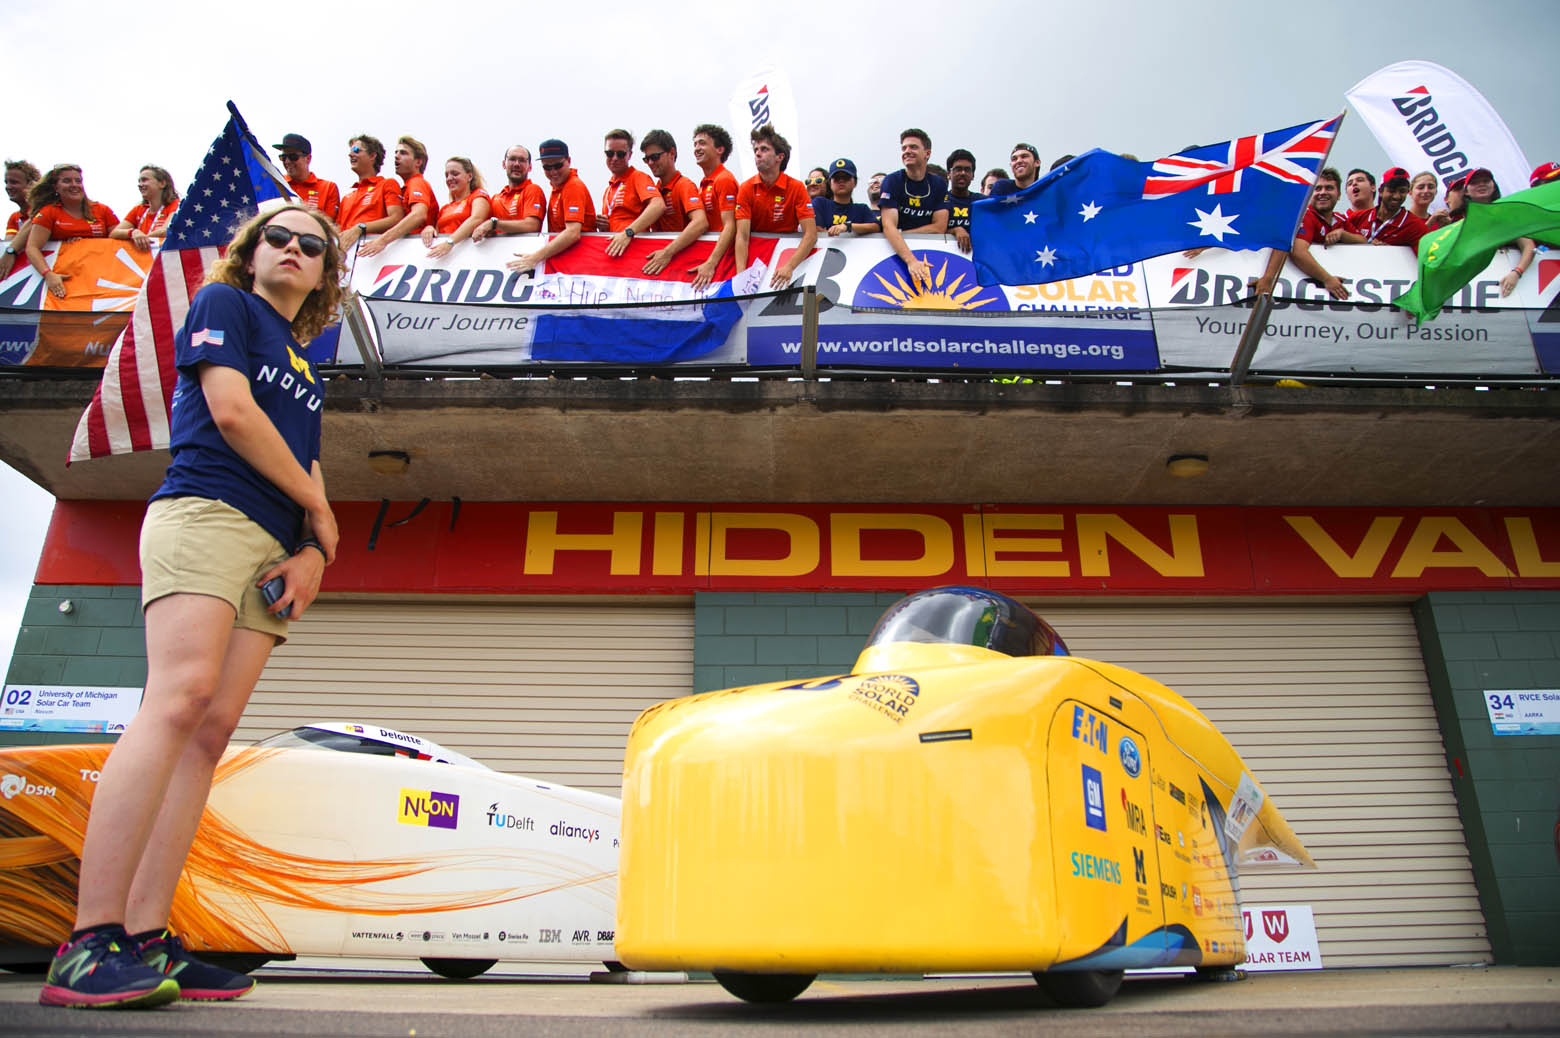 Sarah Zoellick guards Novum during the Bridgestone World Solar Challenge photo-op.